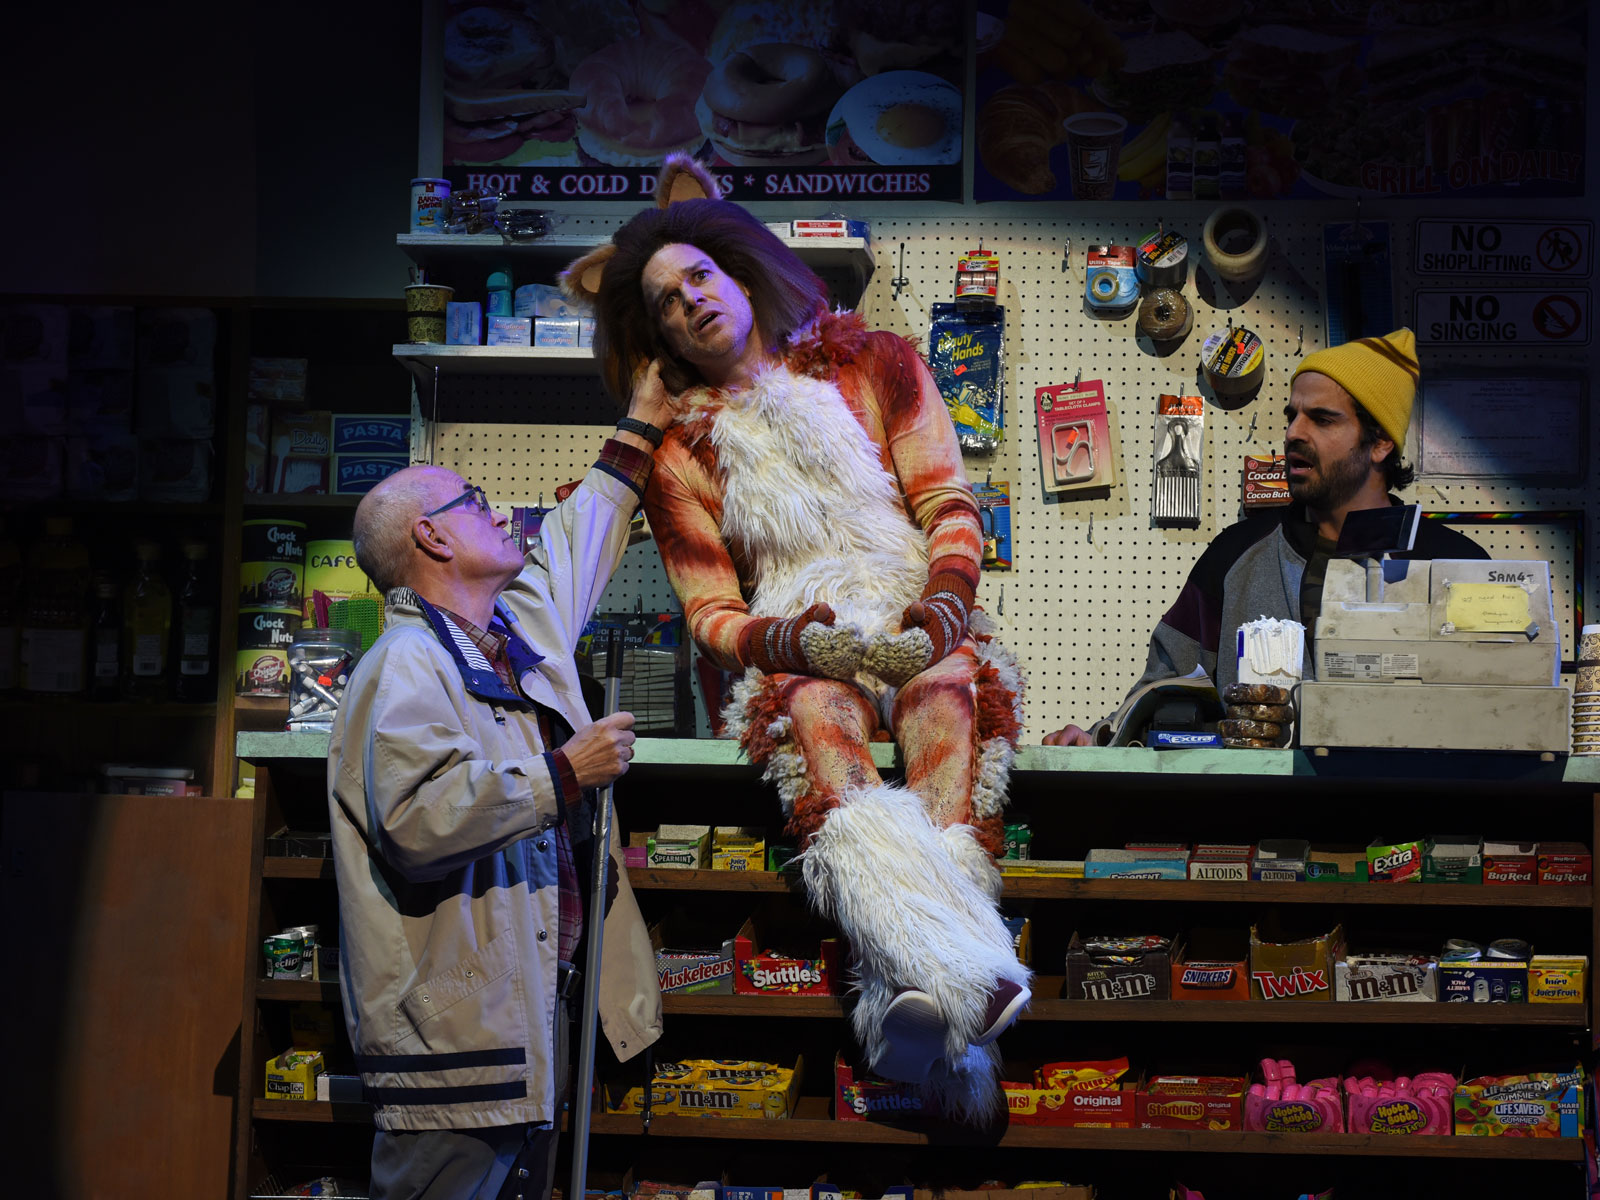 skittles-musical-review-1-FT-BLOG0119.jpg